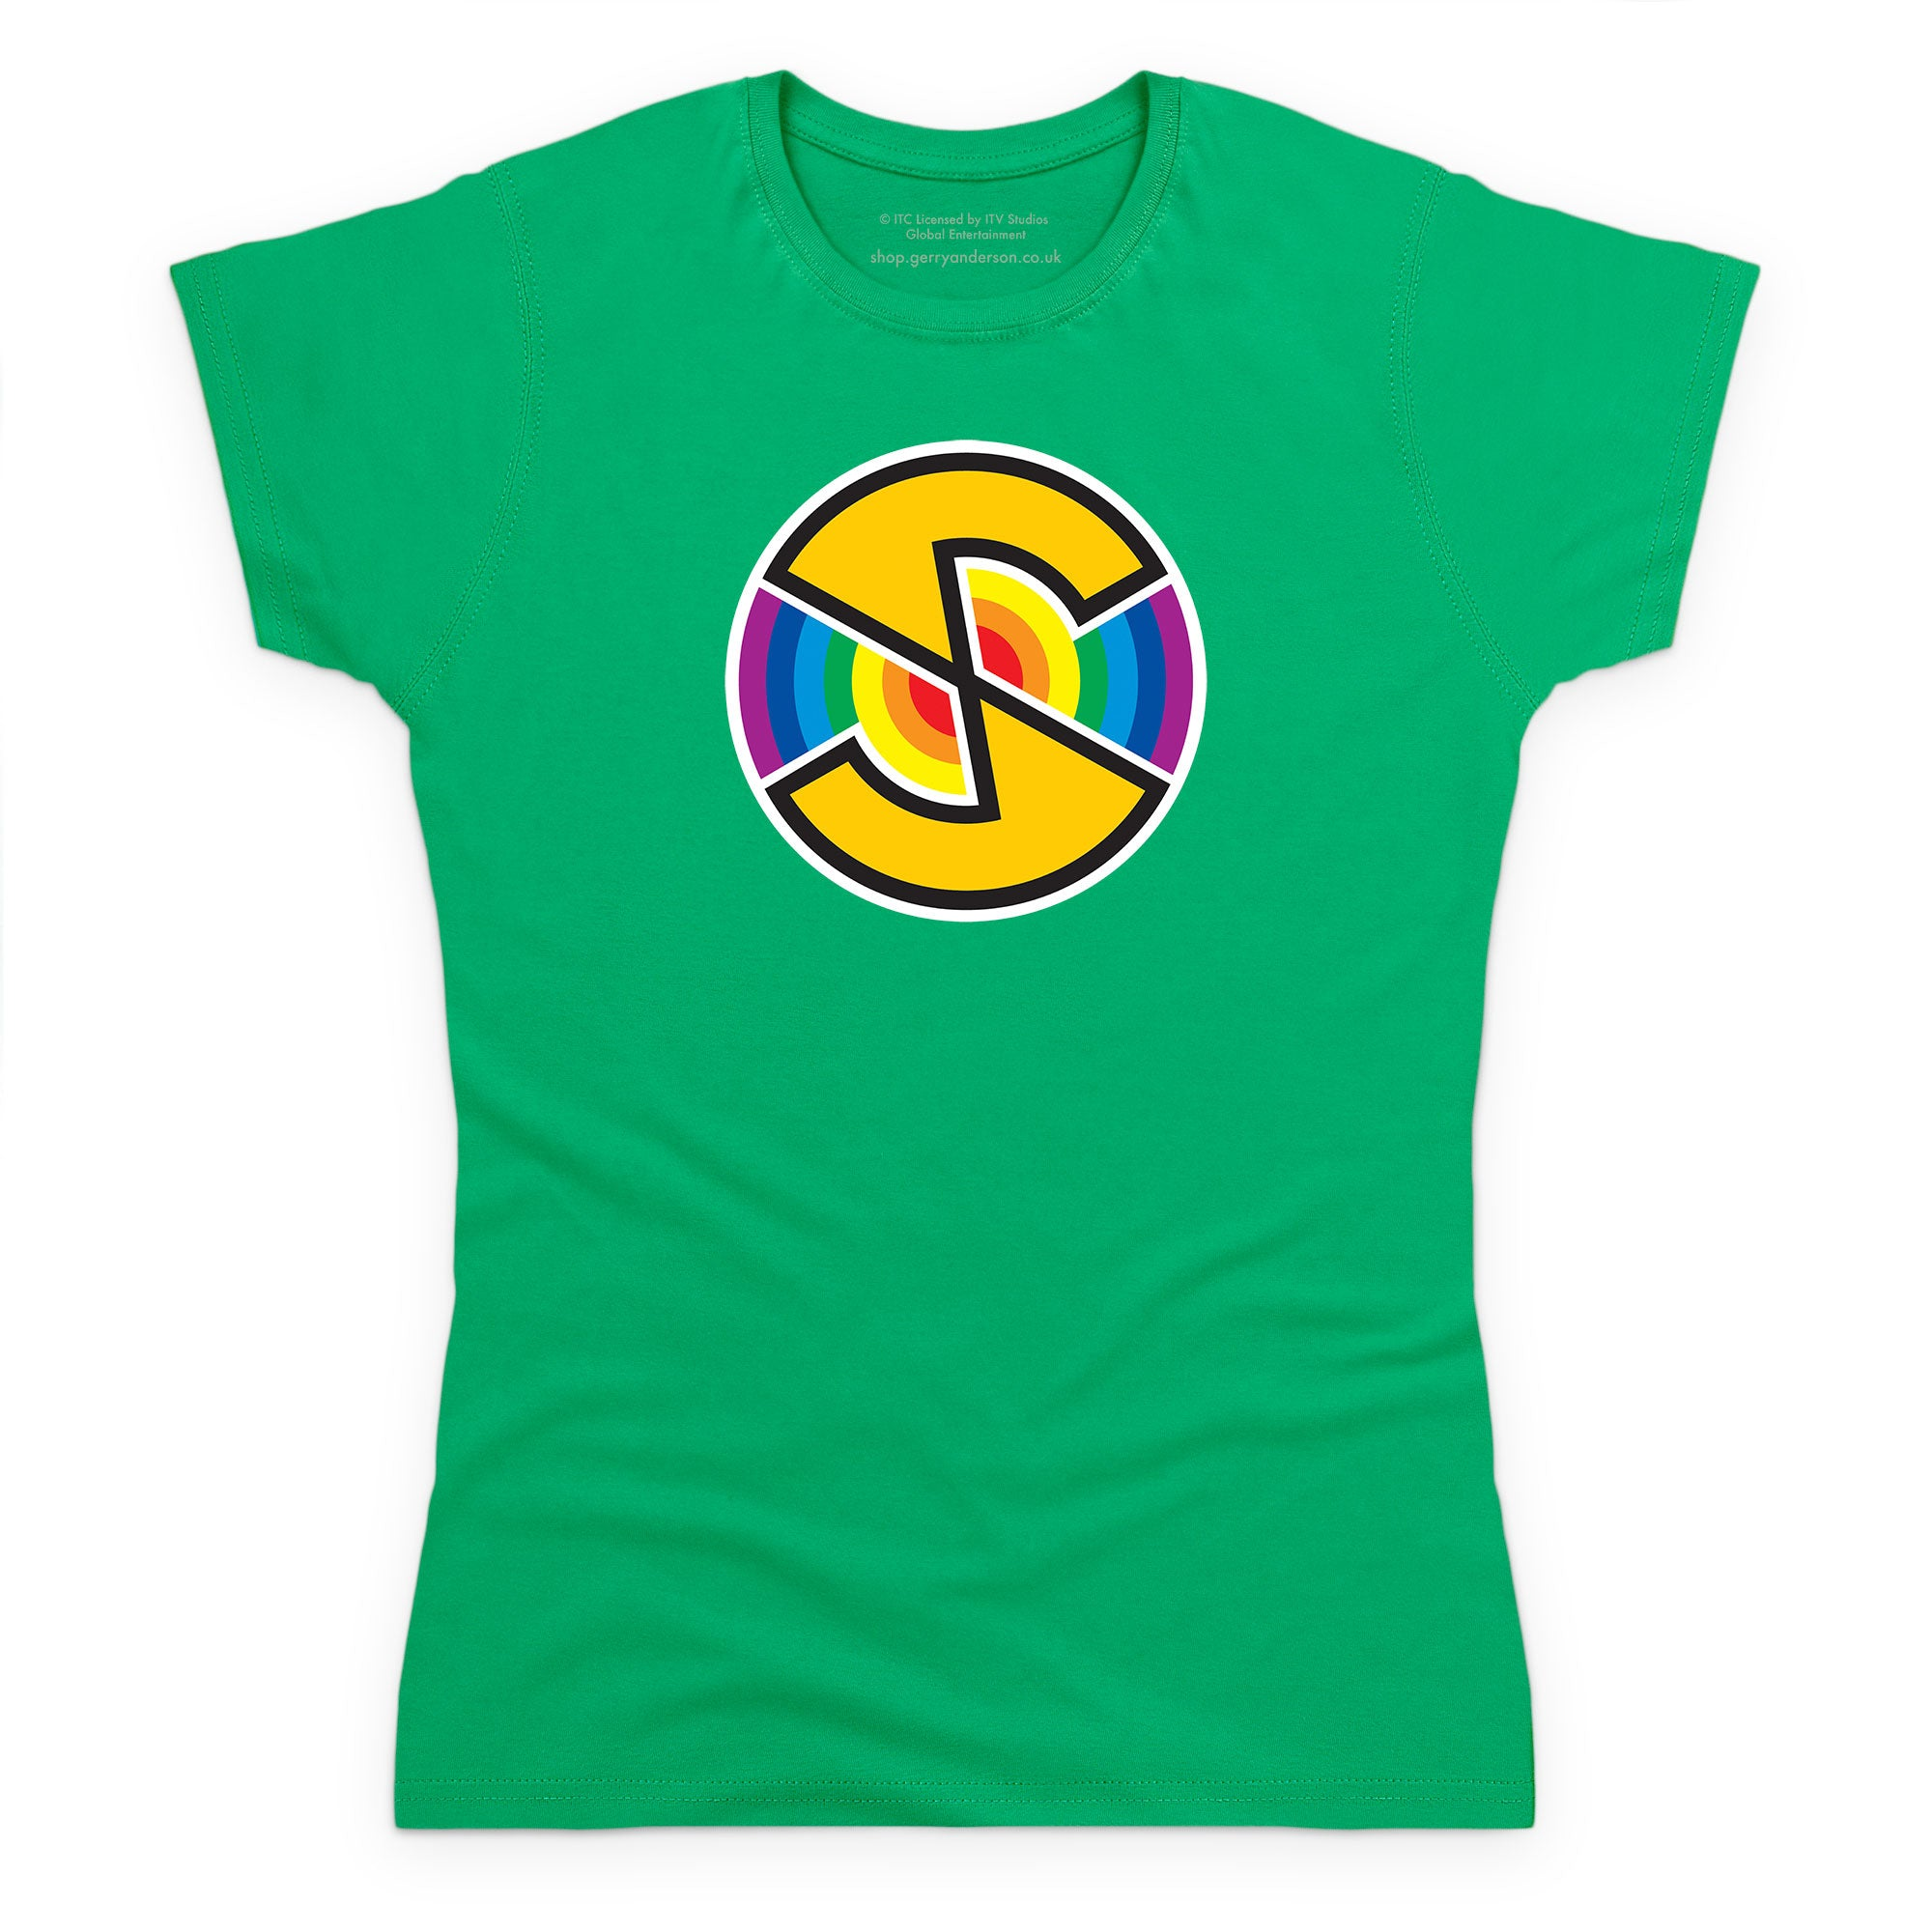 Captain Scarlet Spectrum Logo Women's T-Shirt [Official & Exclusive] - The Gerry Anderson Store